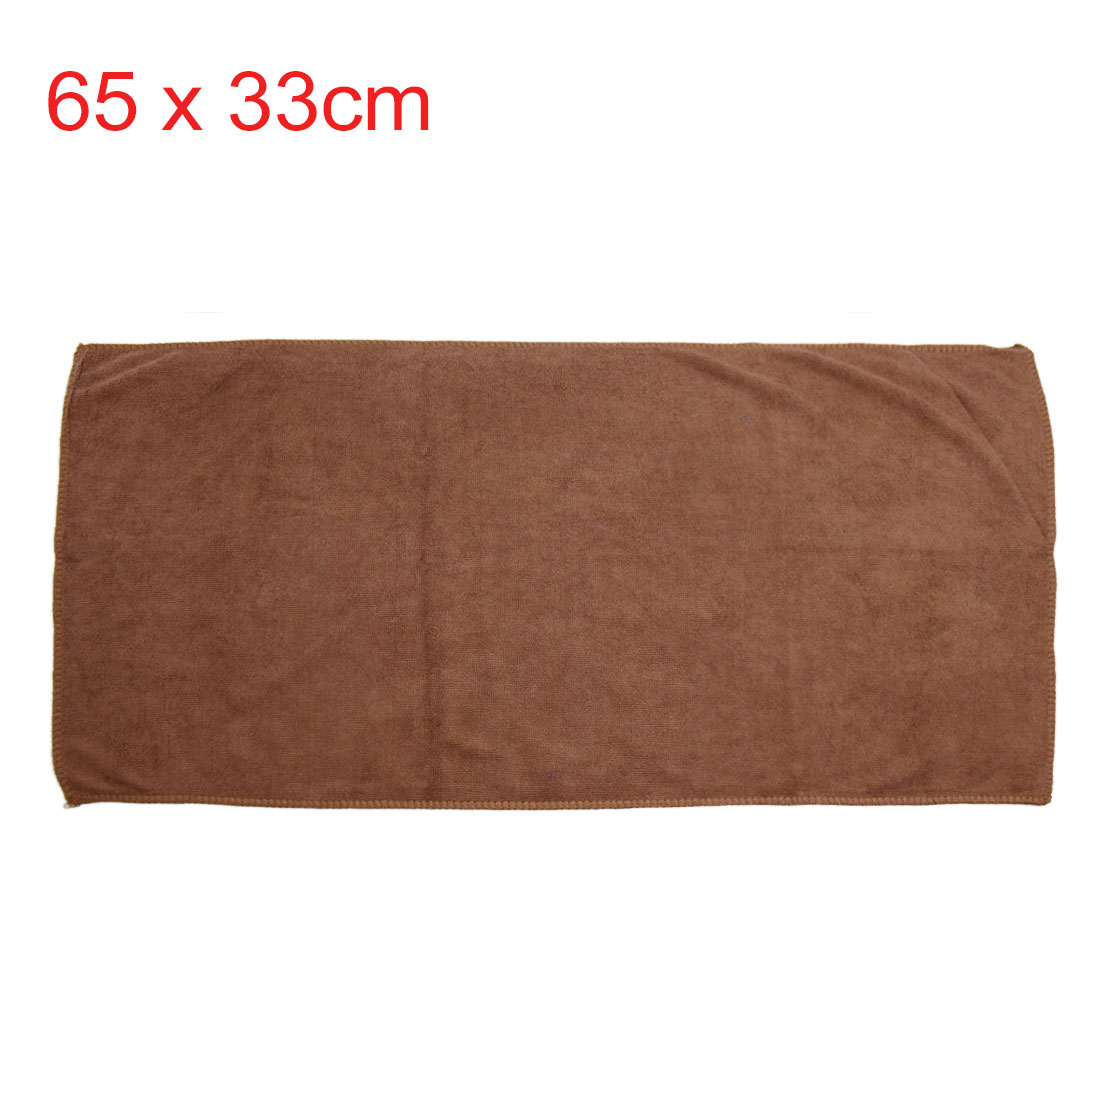 3pcs 250gsm 65 x 33cm Blue Green Coffee Color Microfiber Cleaning Towel for Car - image 1 of 7